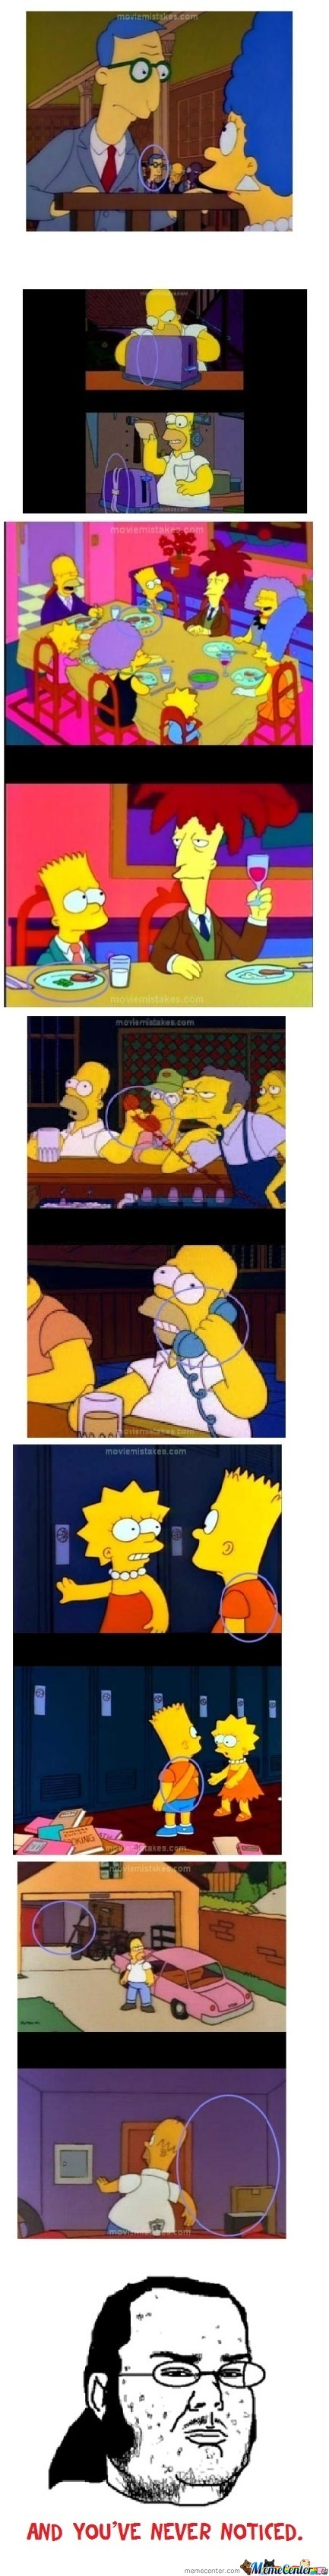 The Simpsons Fail